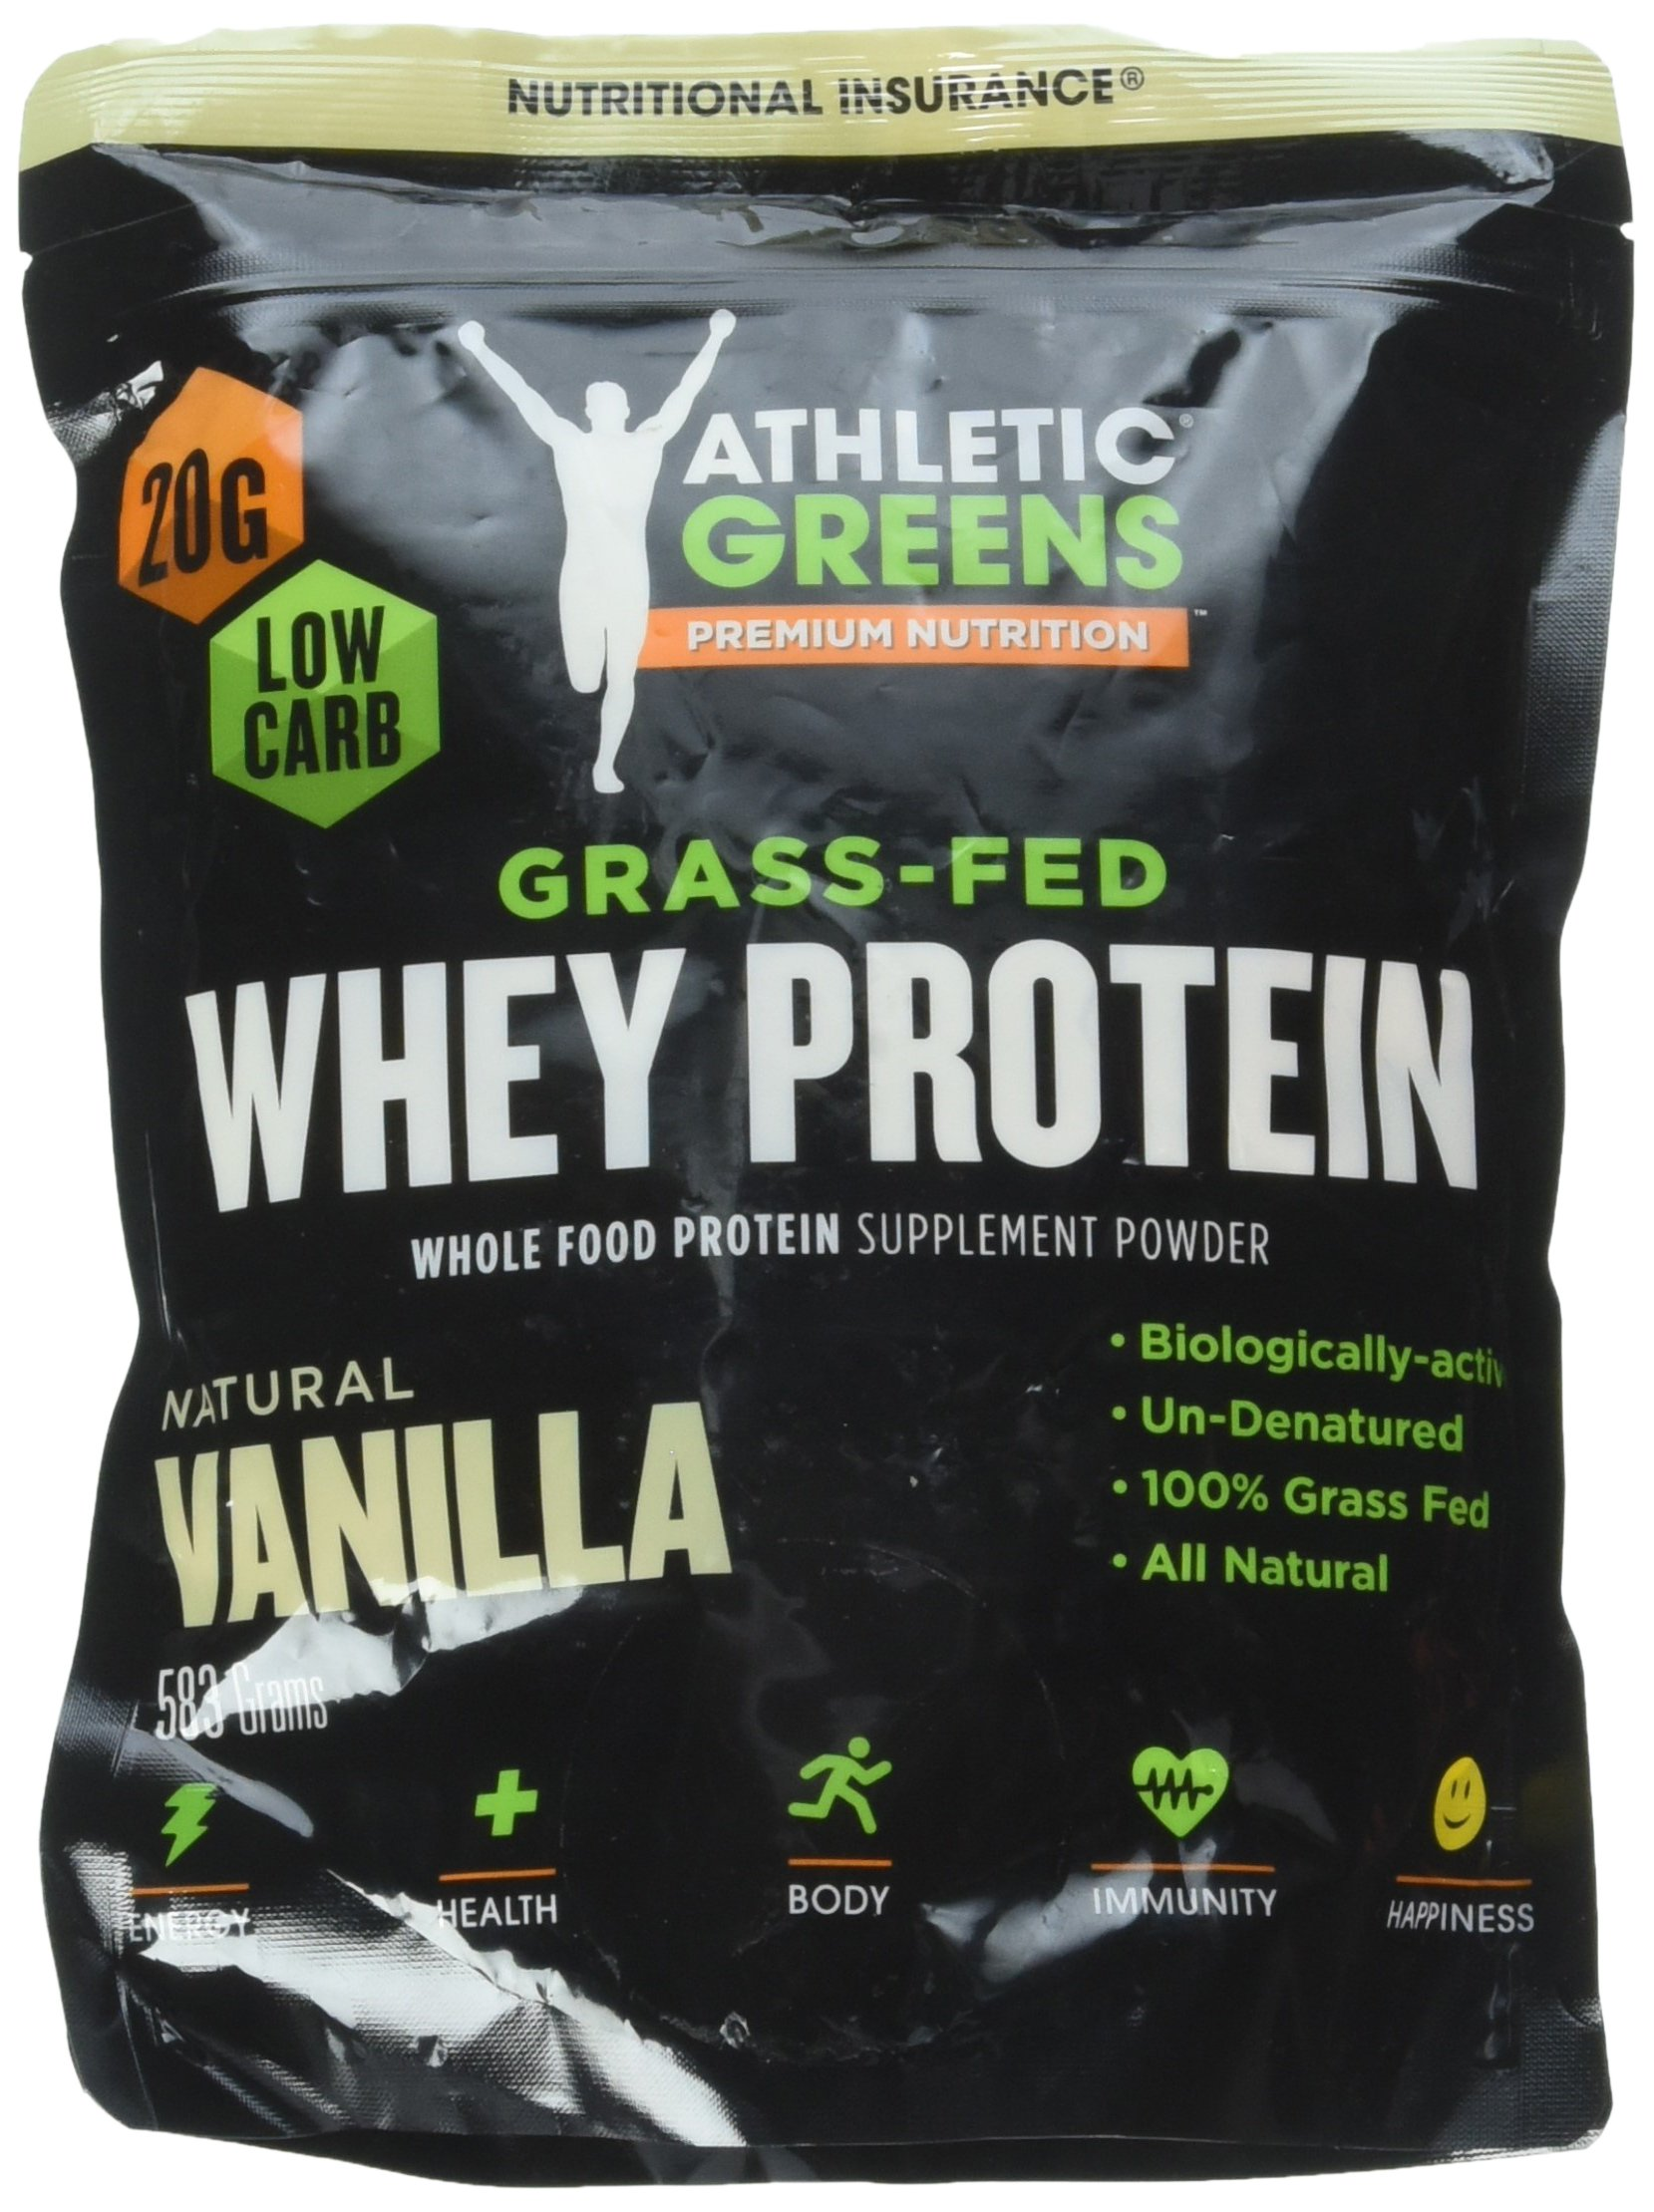 Athletic Greens Grass-Fed Whey Protein, Natural Vanilla - Deliciously Smooth Protein Shake, 100% Grass-Fed (No Hormones, Certified No GMOs), 20g of Protein Per Serving, 583 grams